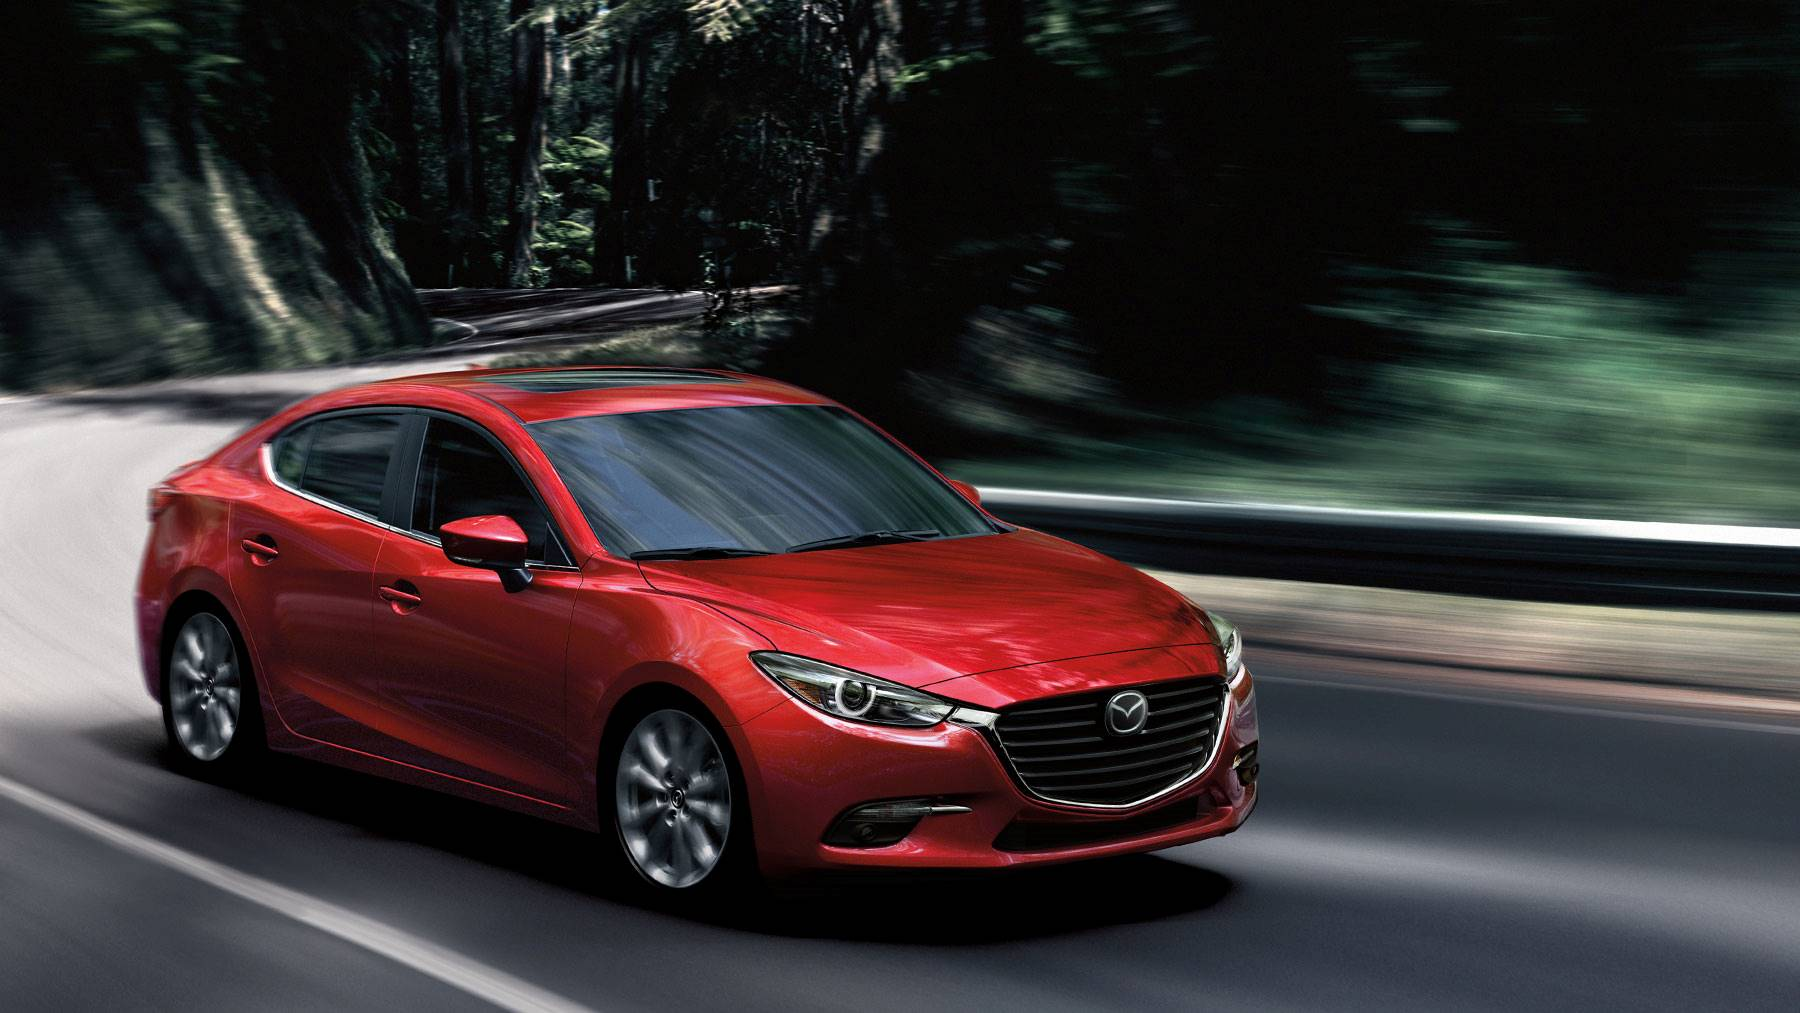 Mazda 3 Owners Manual: Keyless Entry System